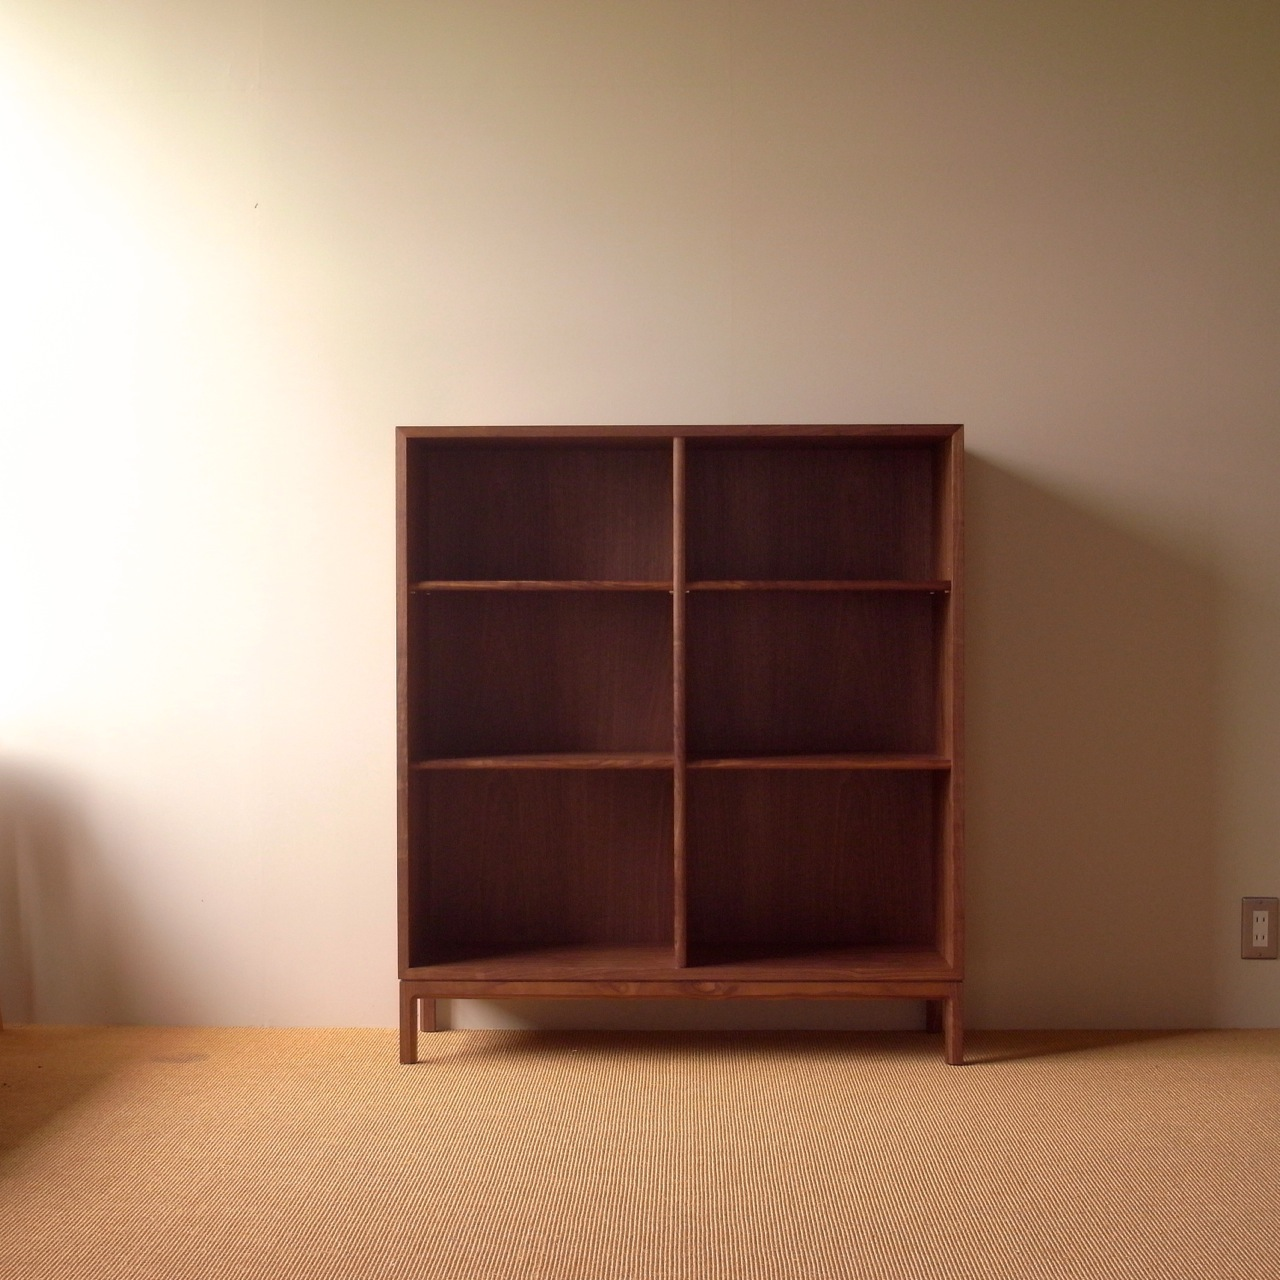 bookshelf W : 1000mm   D : 350mm  H : 1100mm material : Walnut